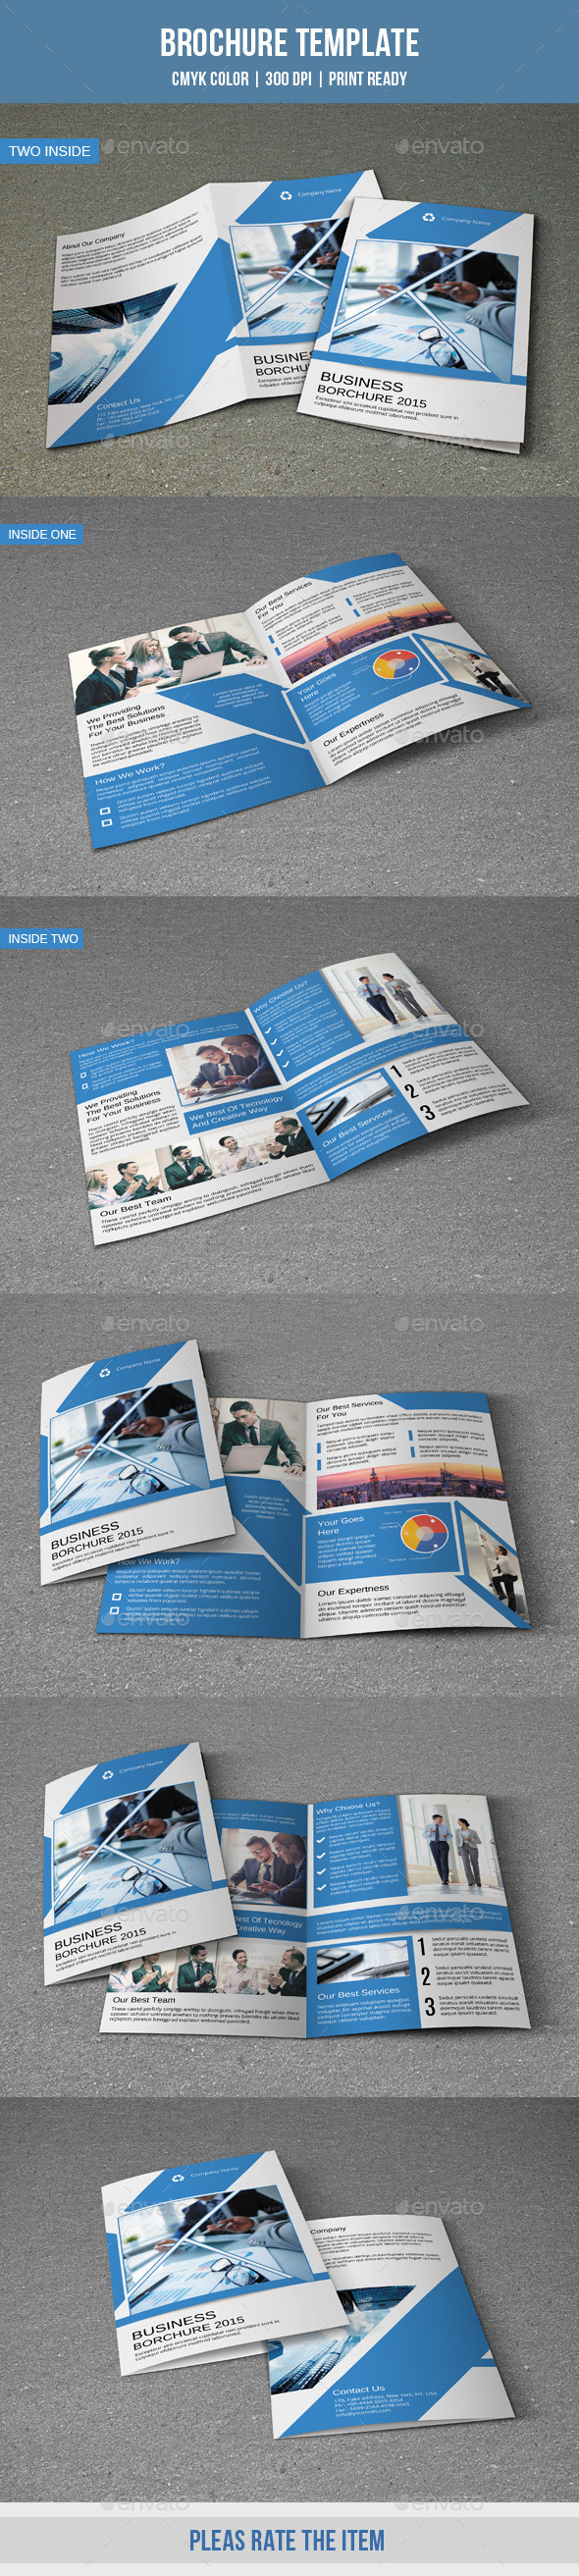 Corporate Bifold Brochure-V182 - Corporate Brochures